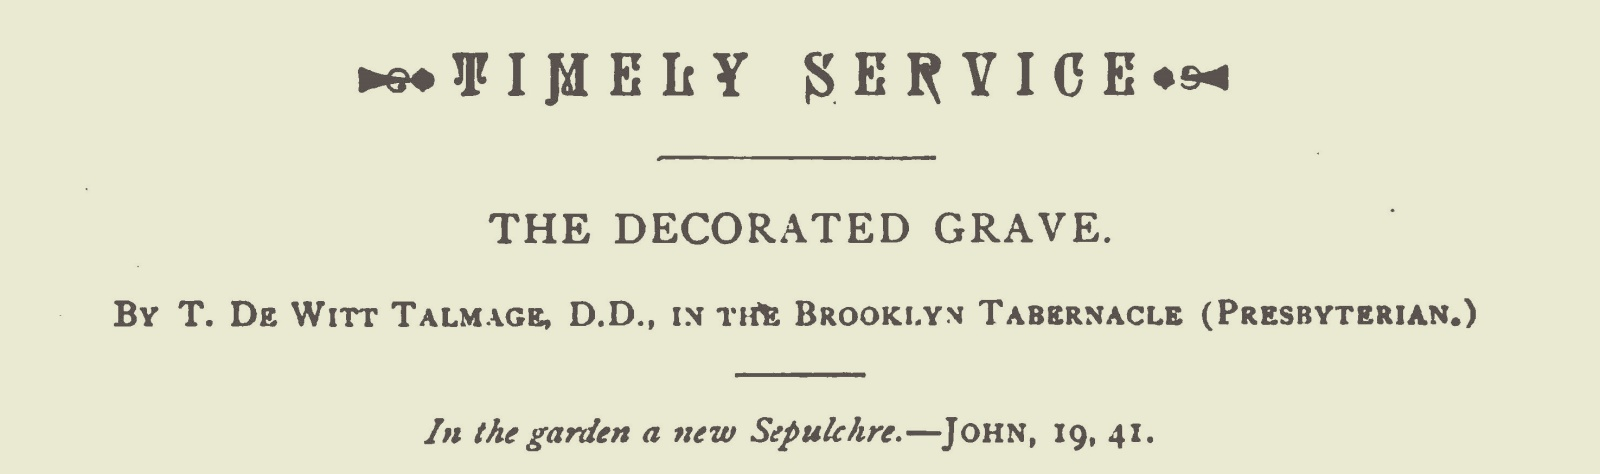 Talmage, Thomas De Witt, The Decorated Grave Title Page.jpg